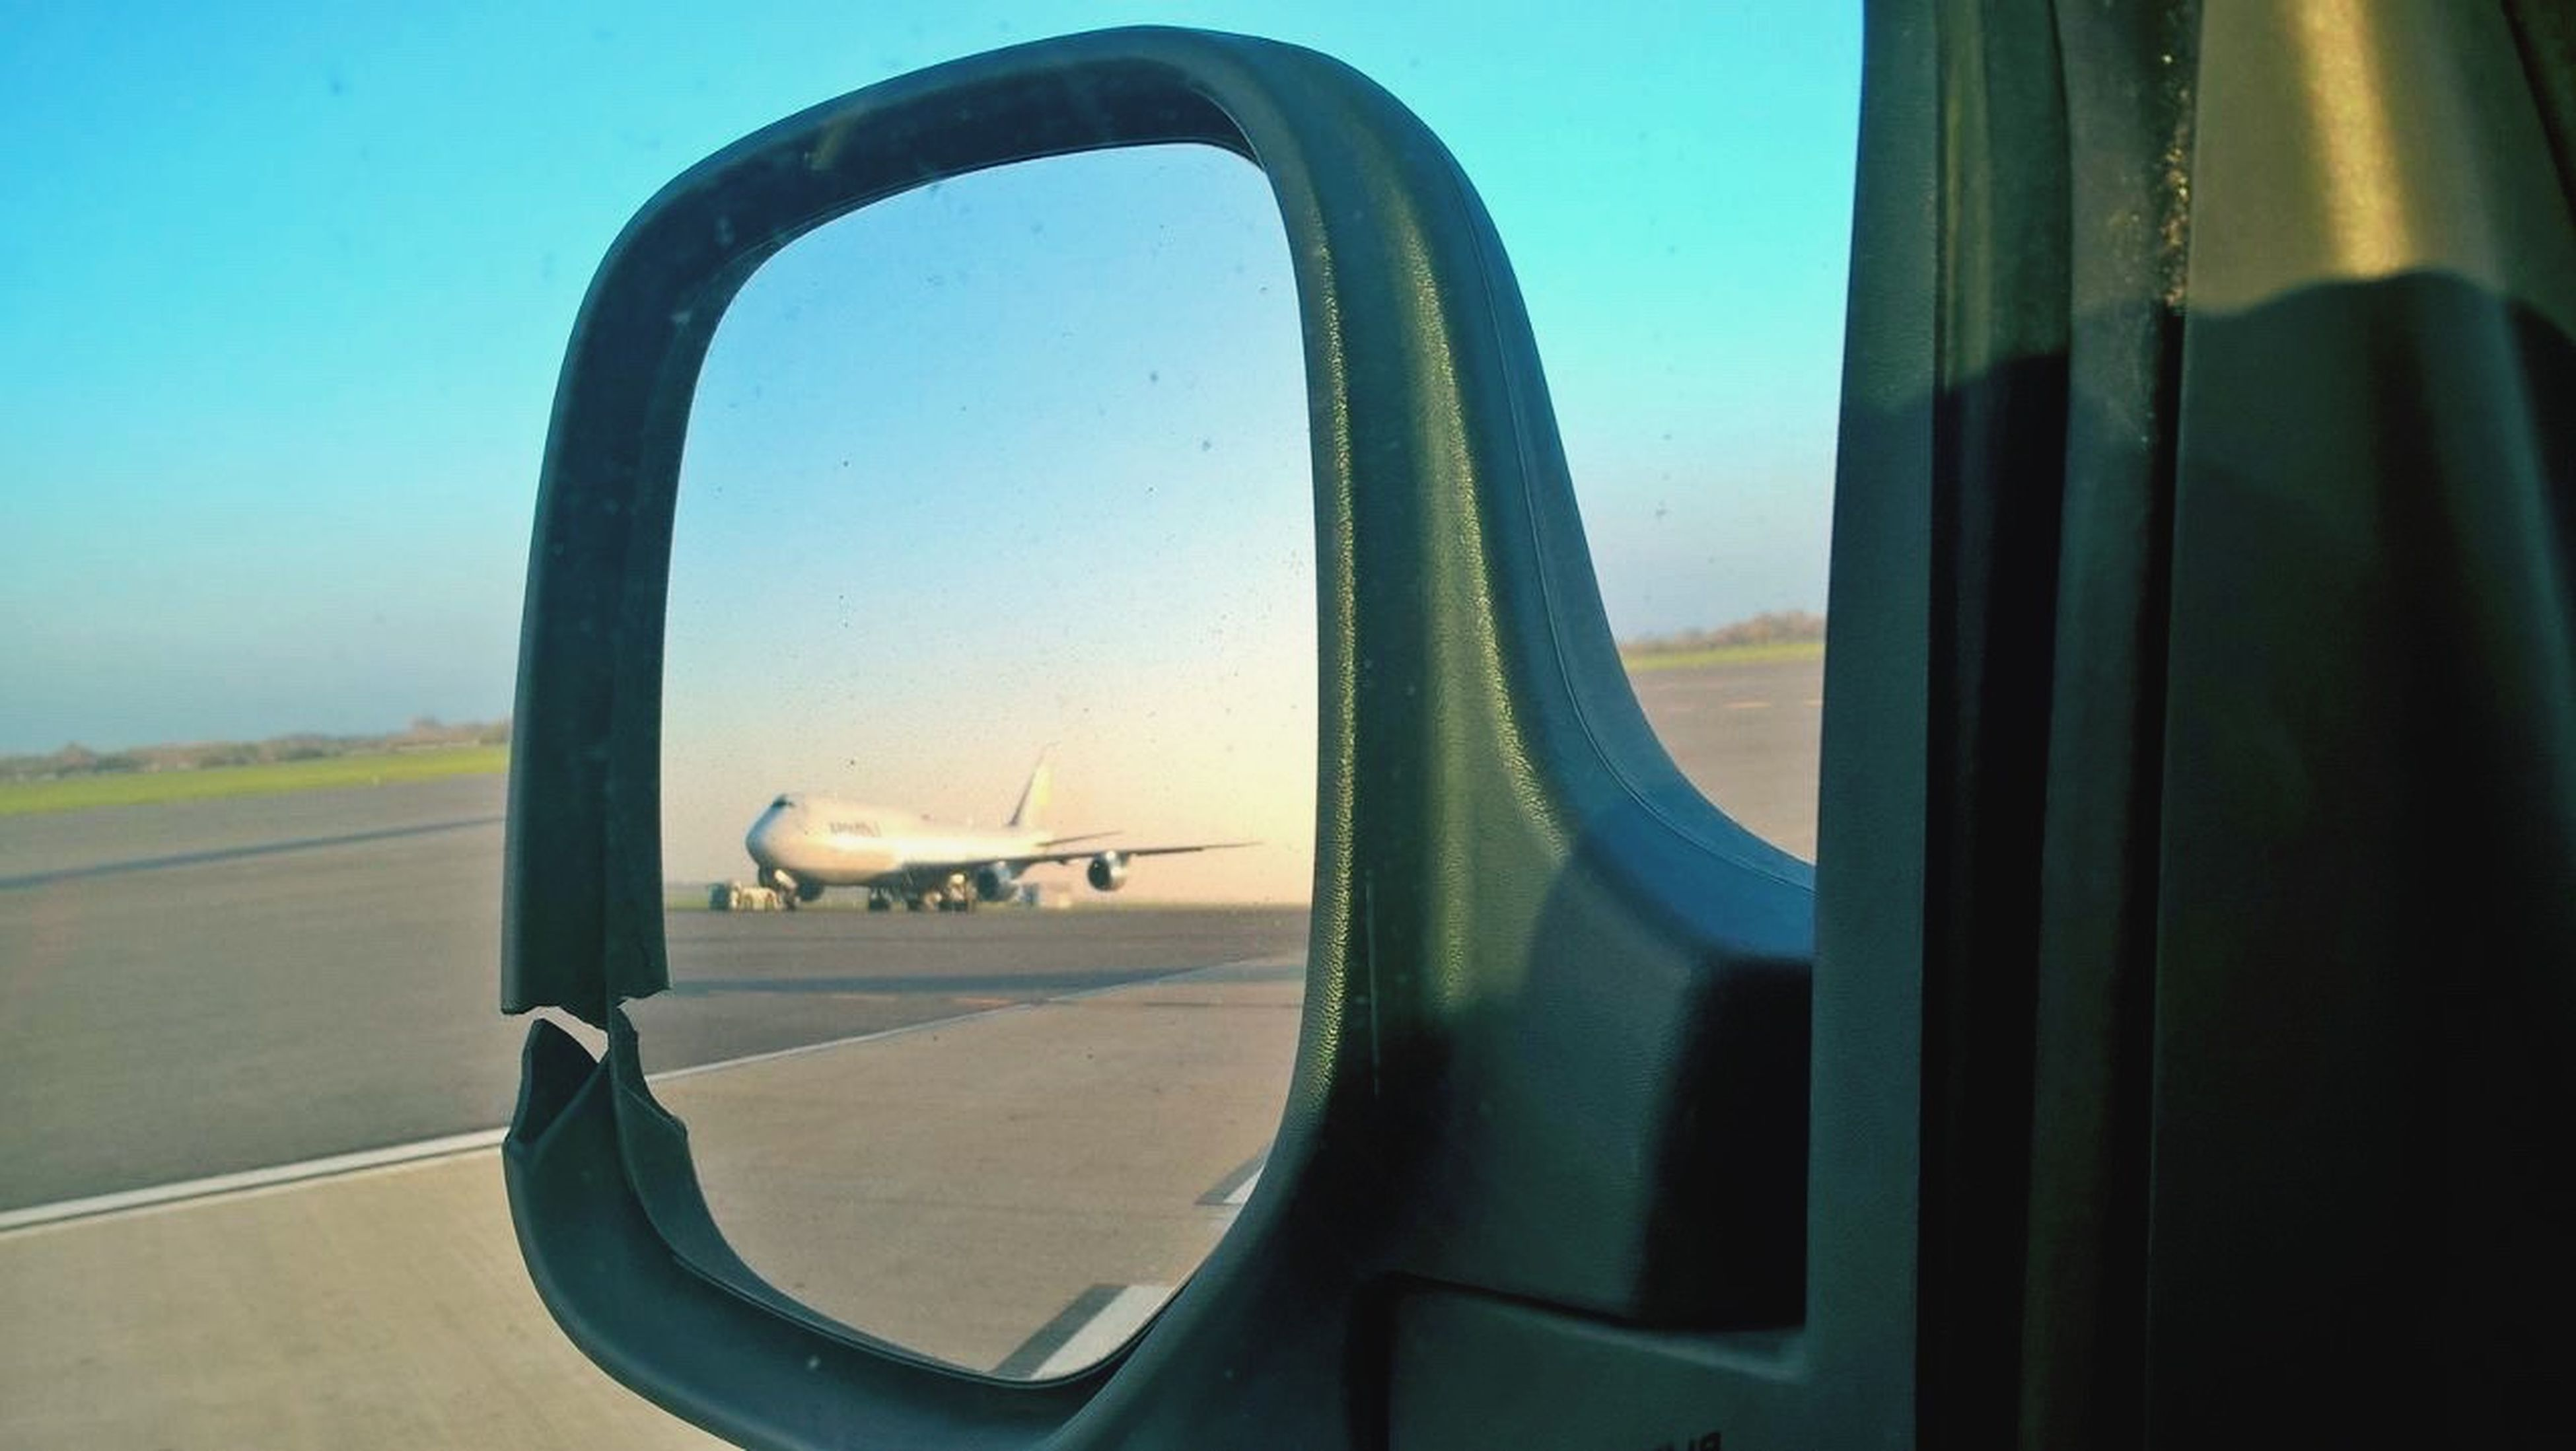 transportation, window, mode of transport, travel, airplane, day, no people, land vehicle, air vehicle, sky, close-up, outdoors, nature